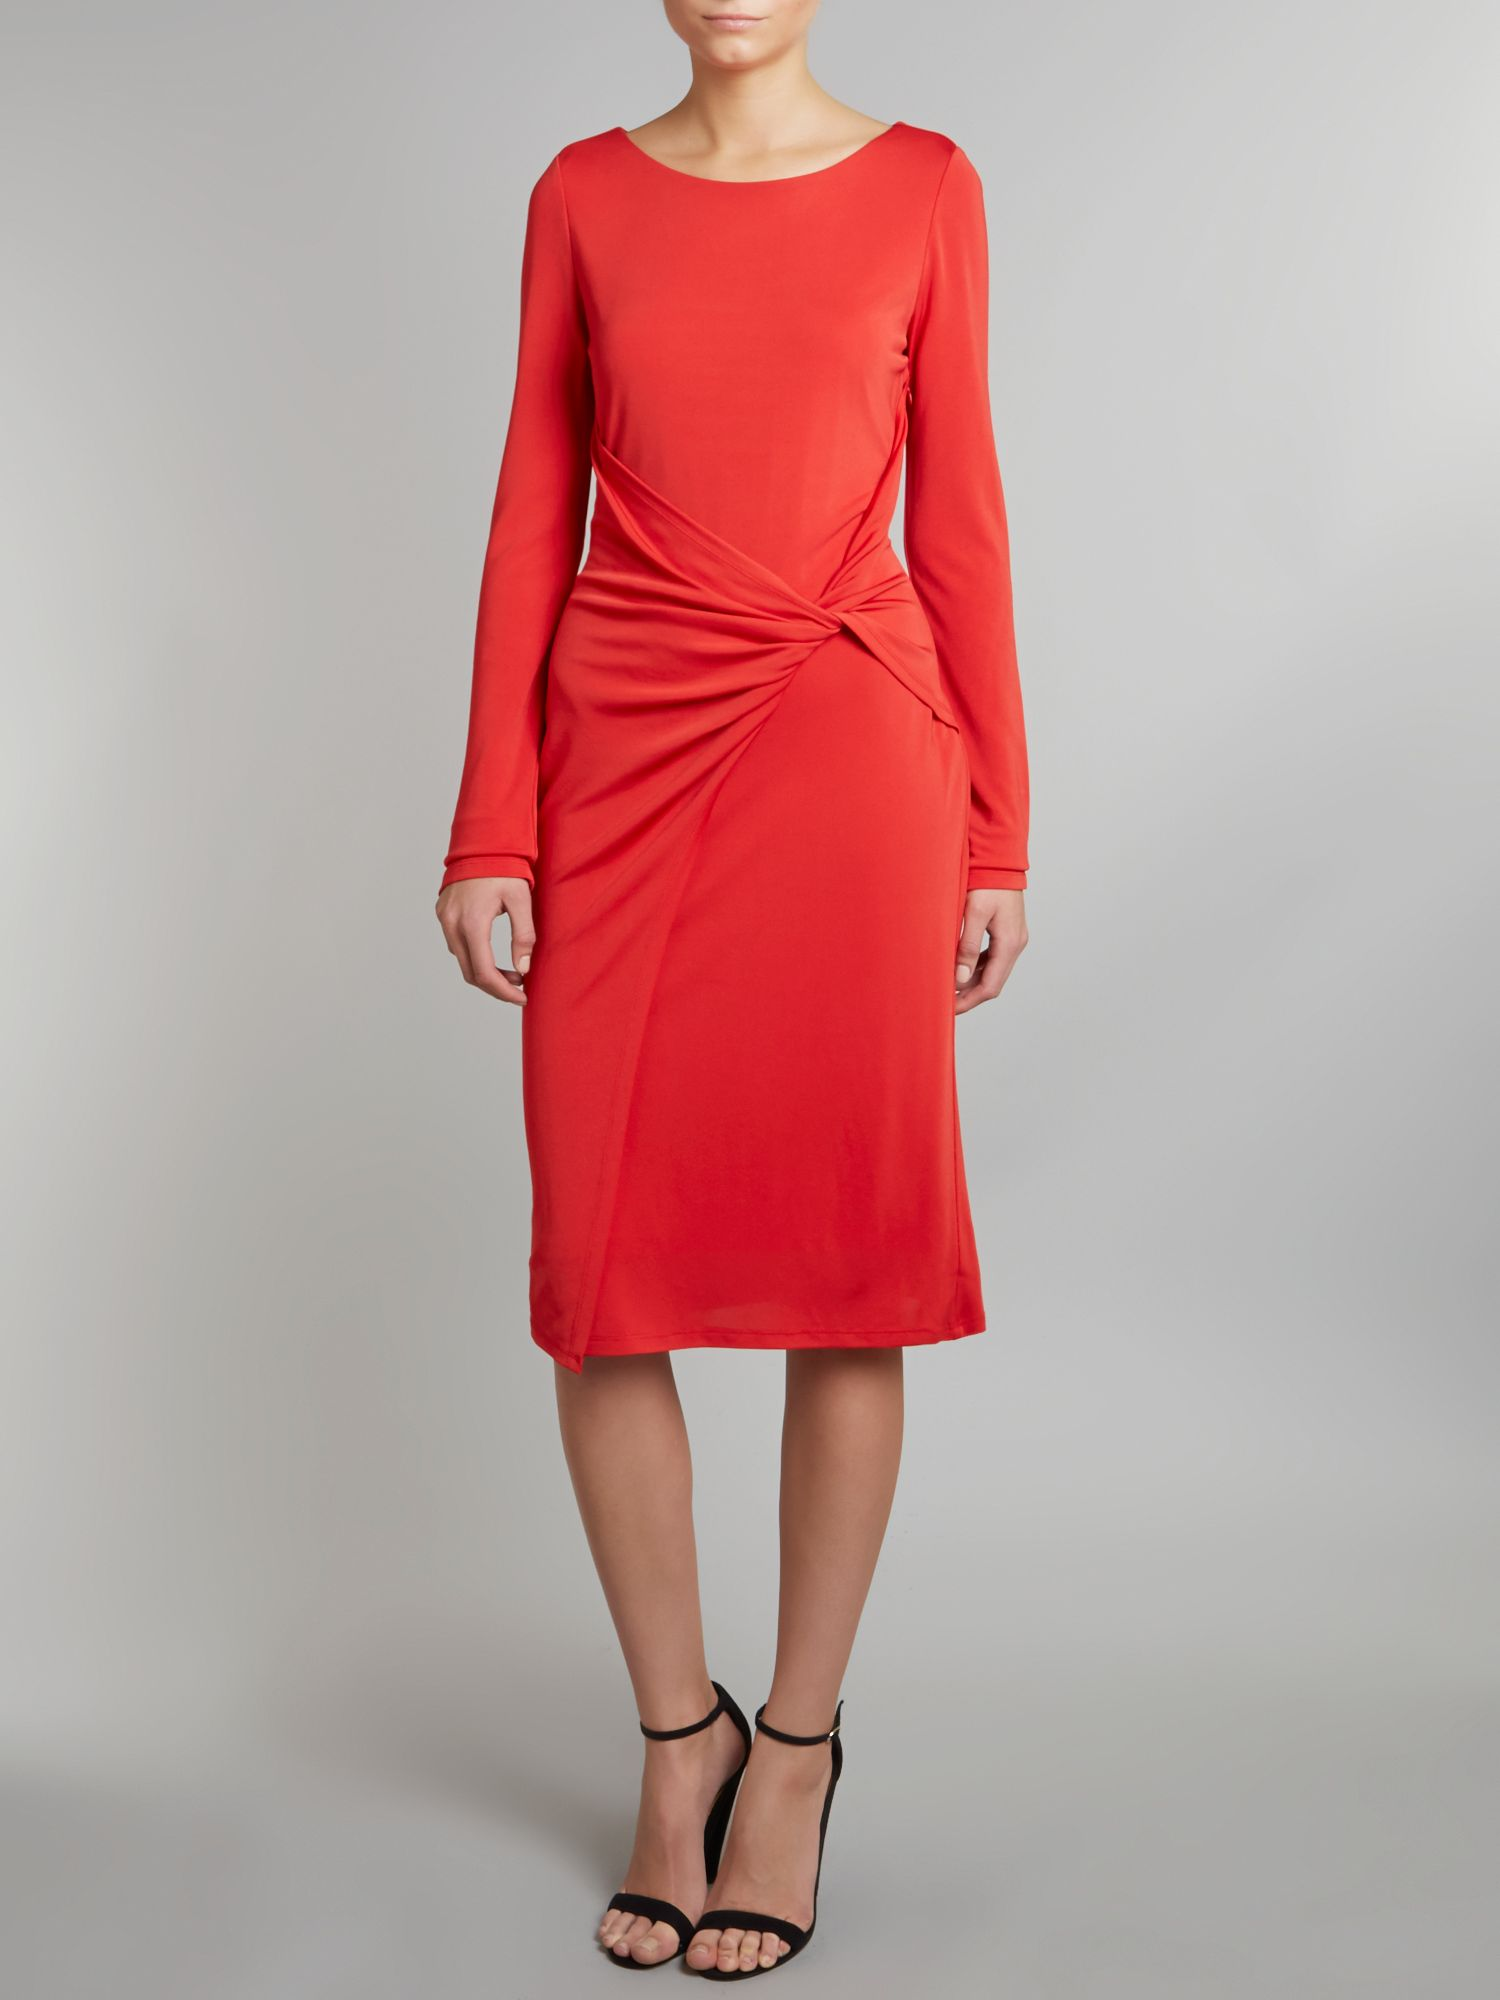 Long sleeved jersey wrap dress